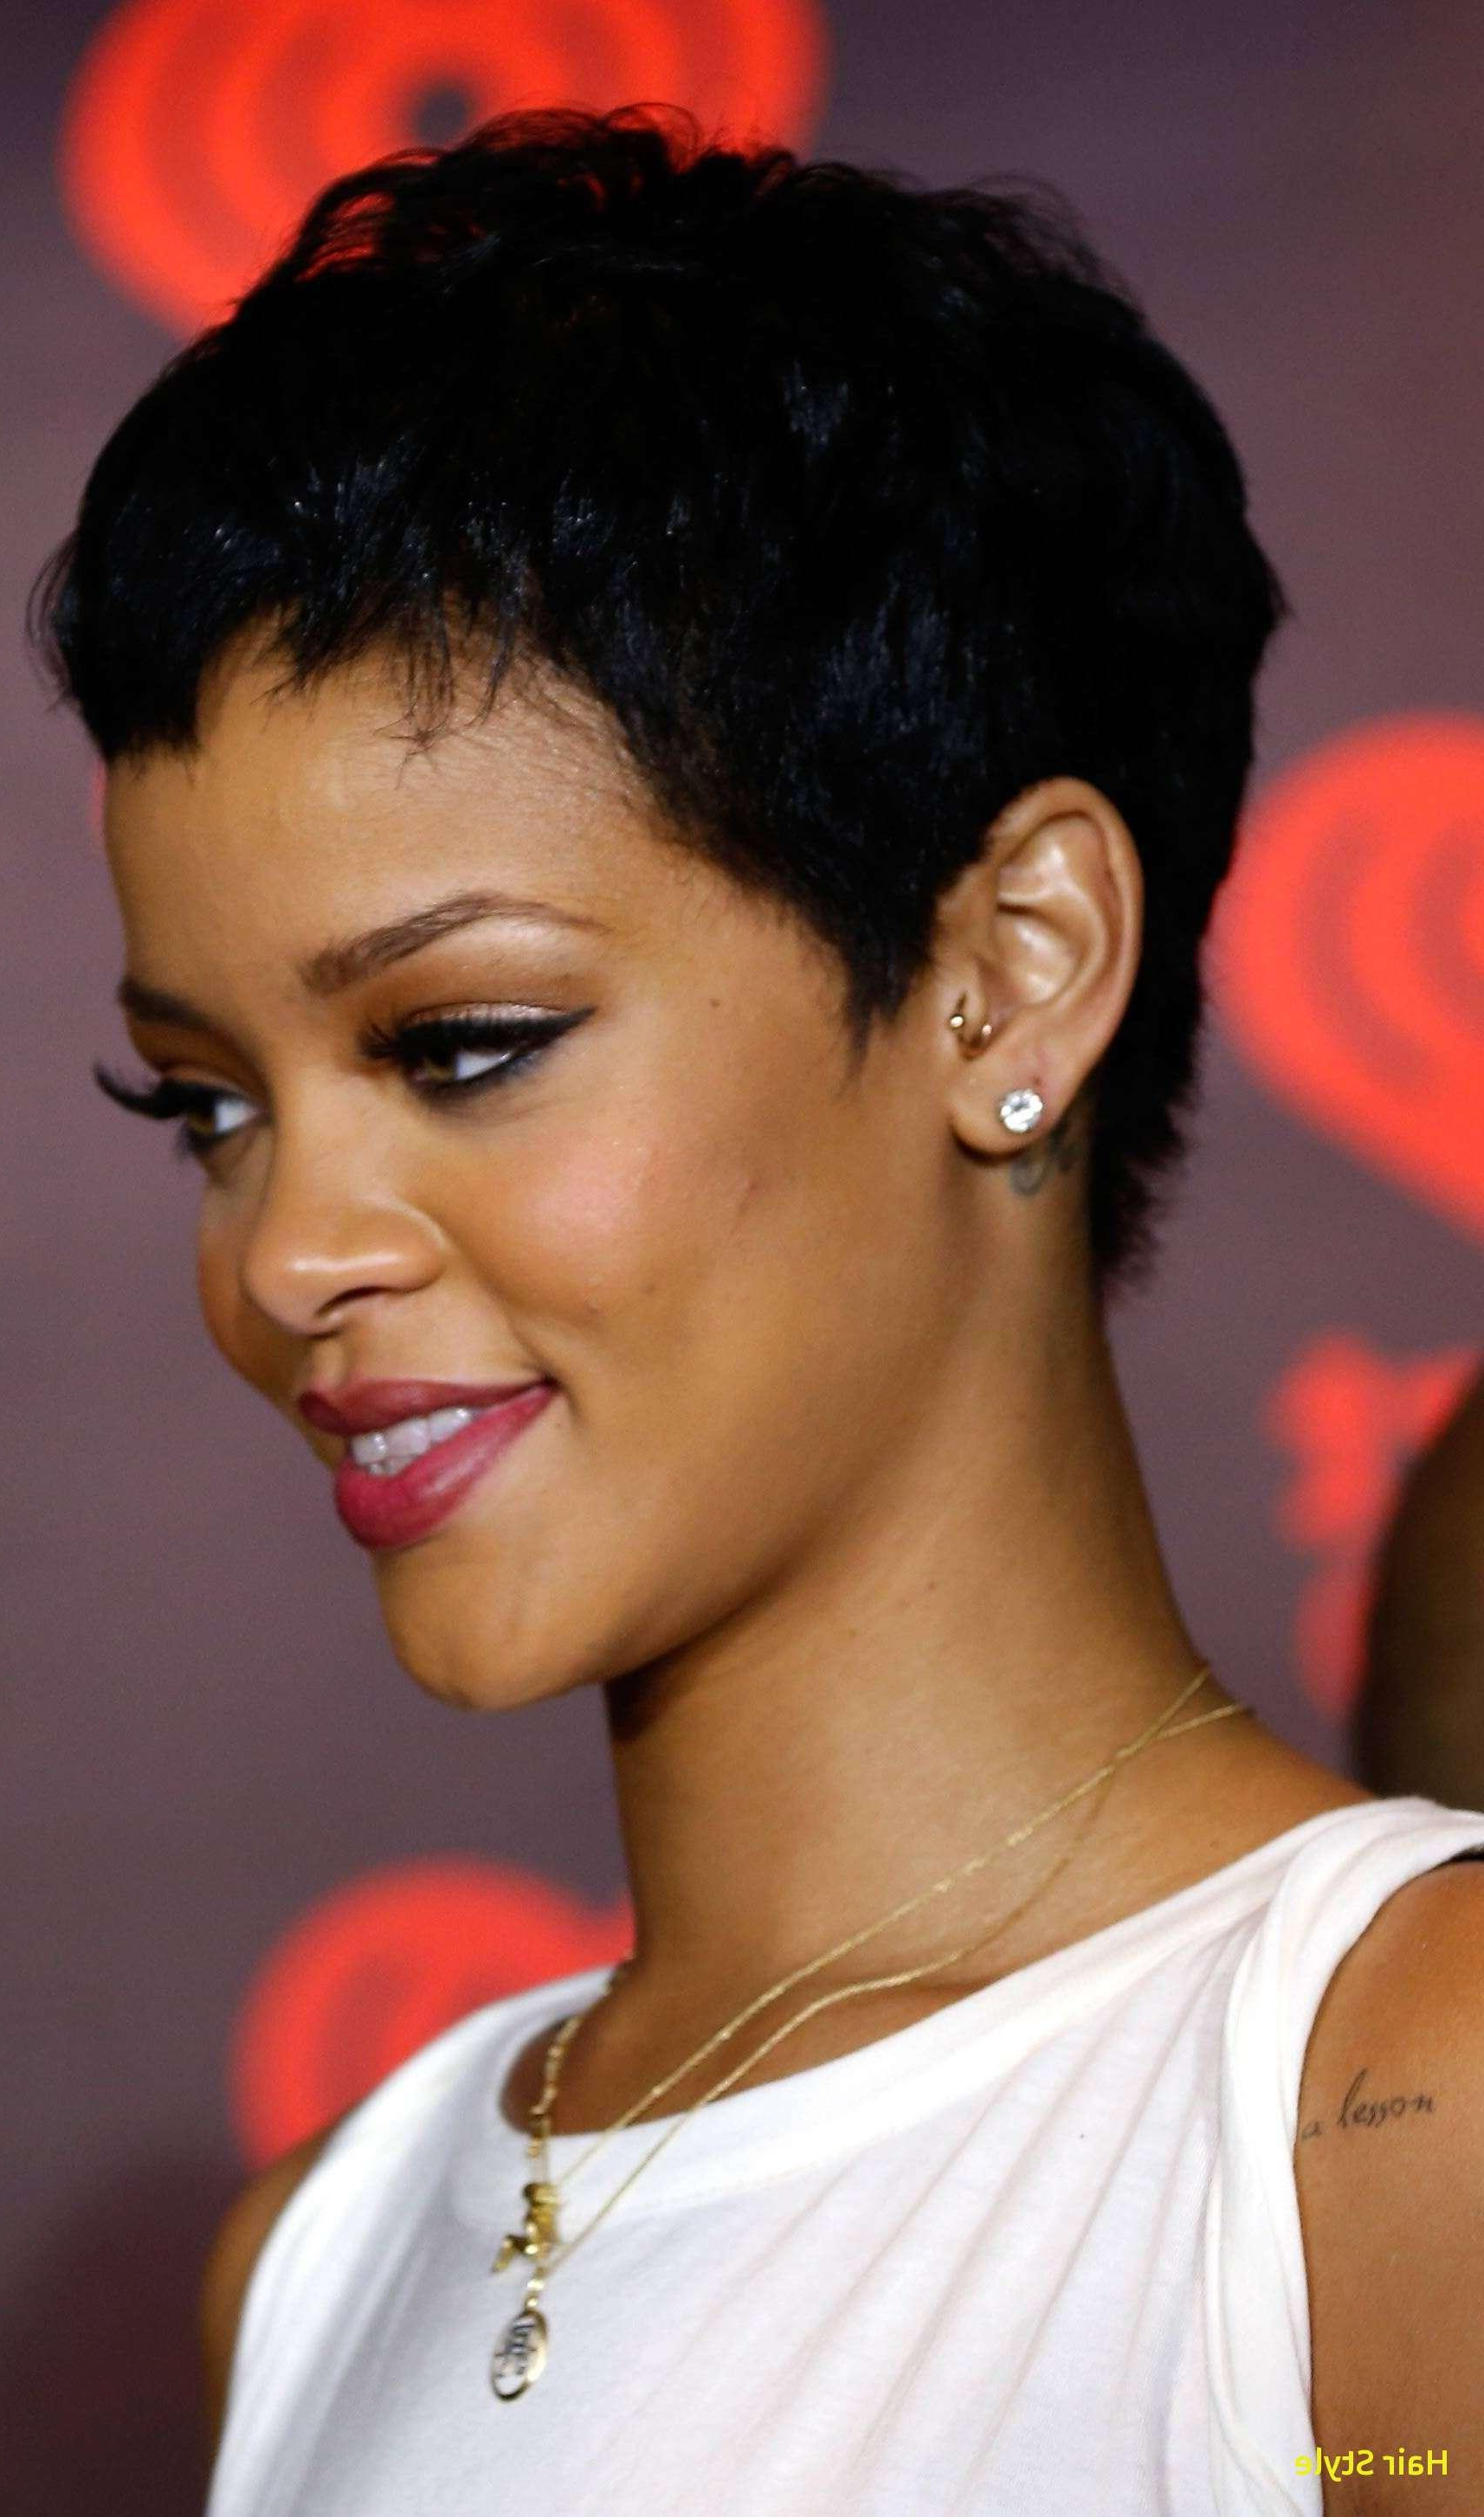 Beautiful Short Hairstyles For Black Women With Round Faces 2016 Concept Inside Short Haircuts For Round Faces Black Women (View 4 of 25)